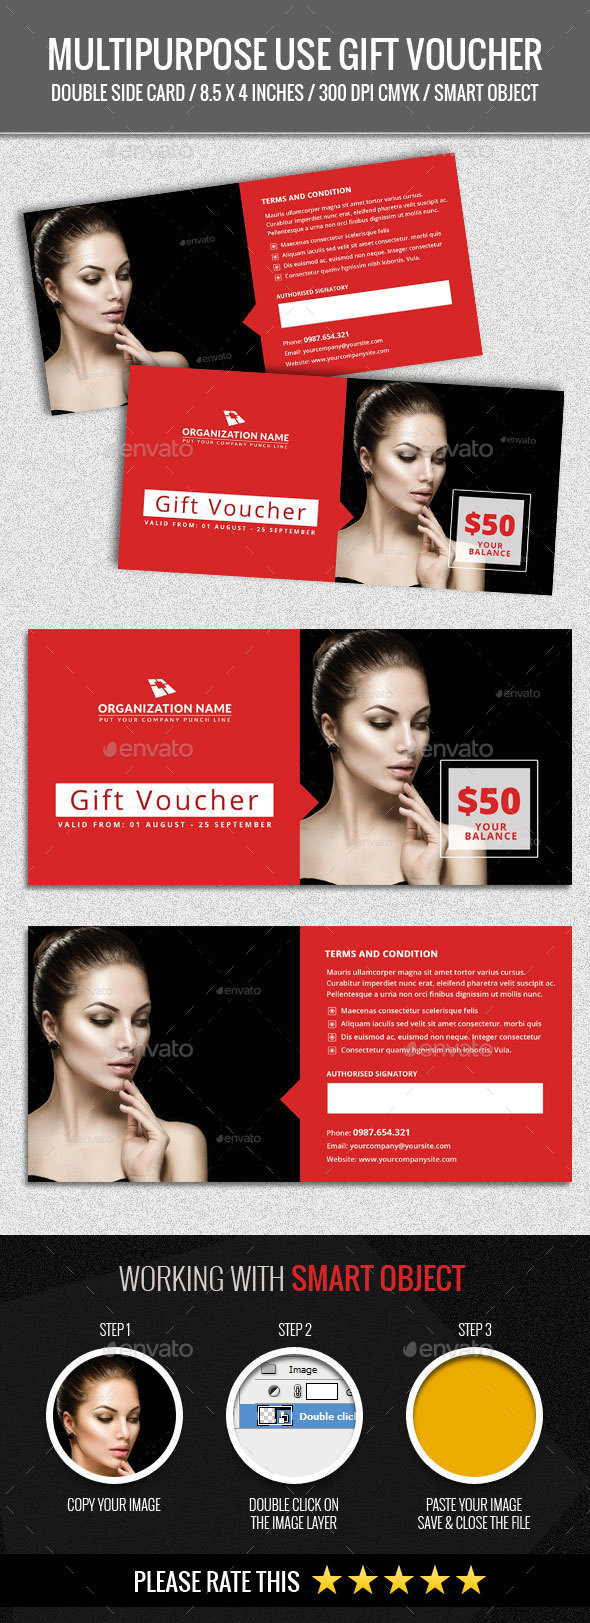 Multipurpose Use Gift Voucher - Loyalty Cards Cards & Invites